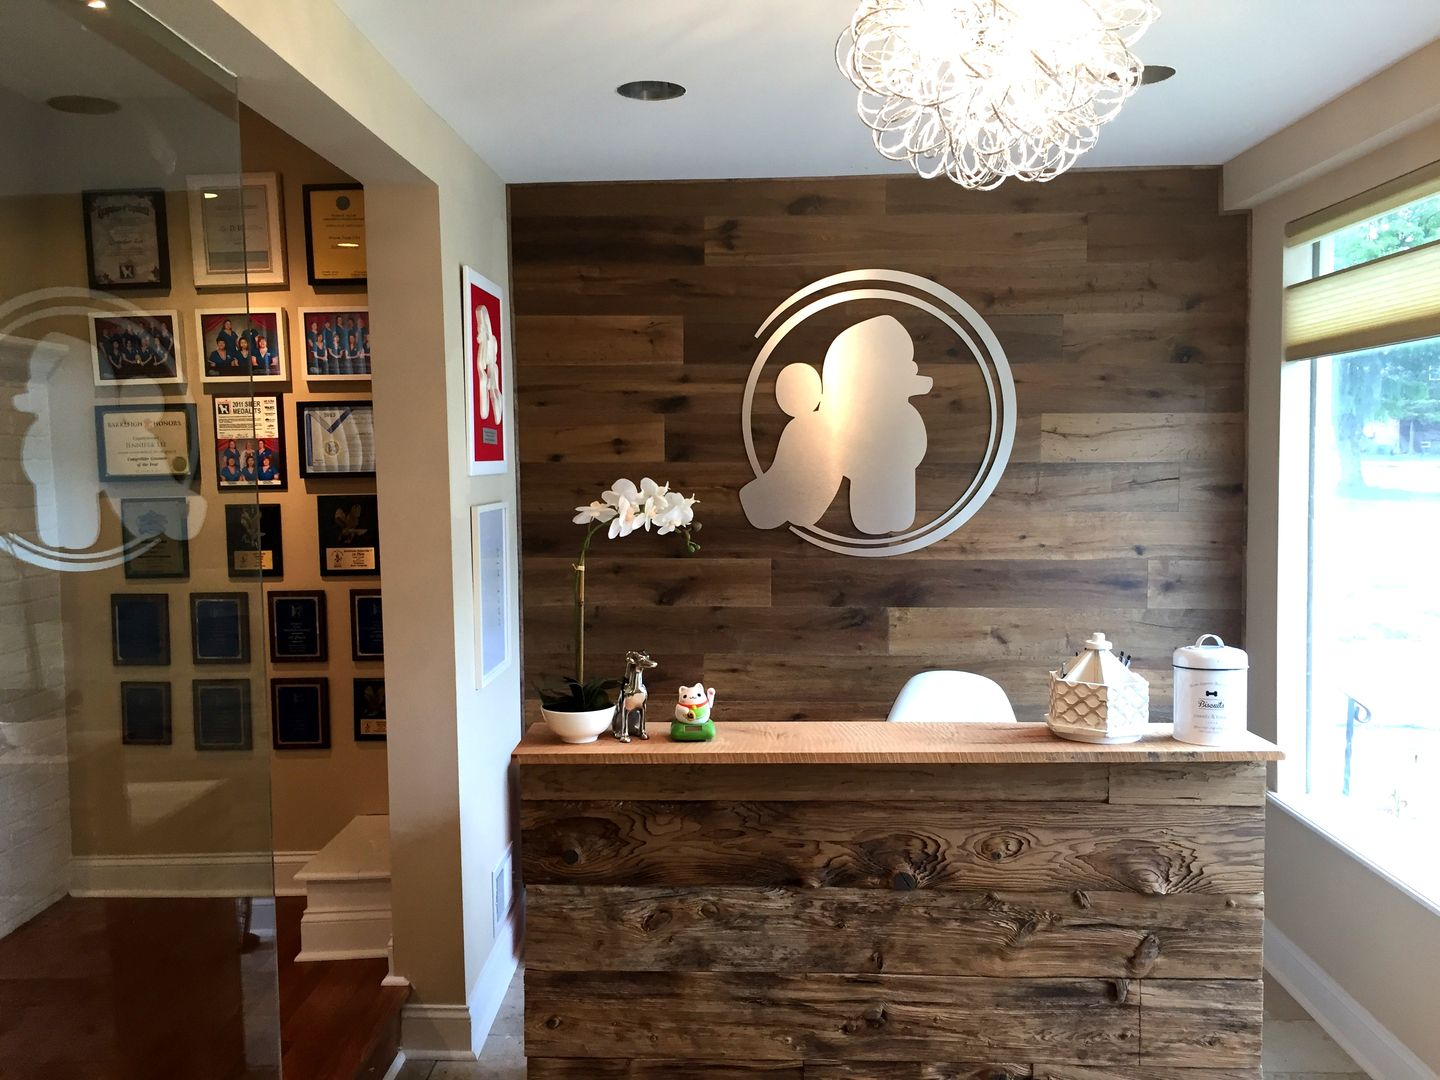 Haverford Pet Style : About  Pet grooming salon, Dog grooming